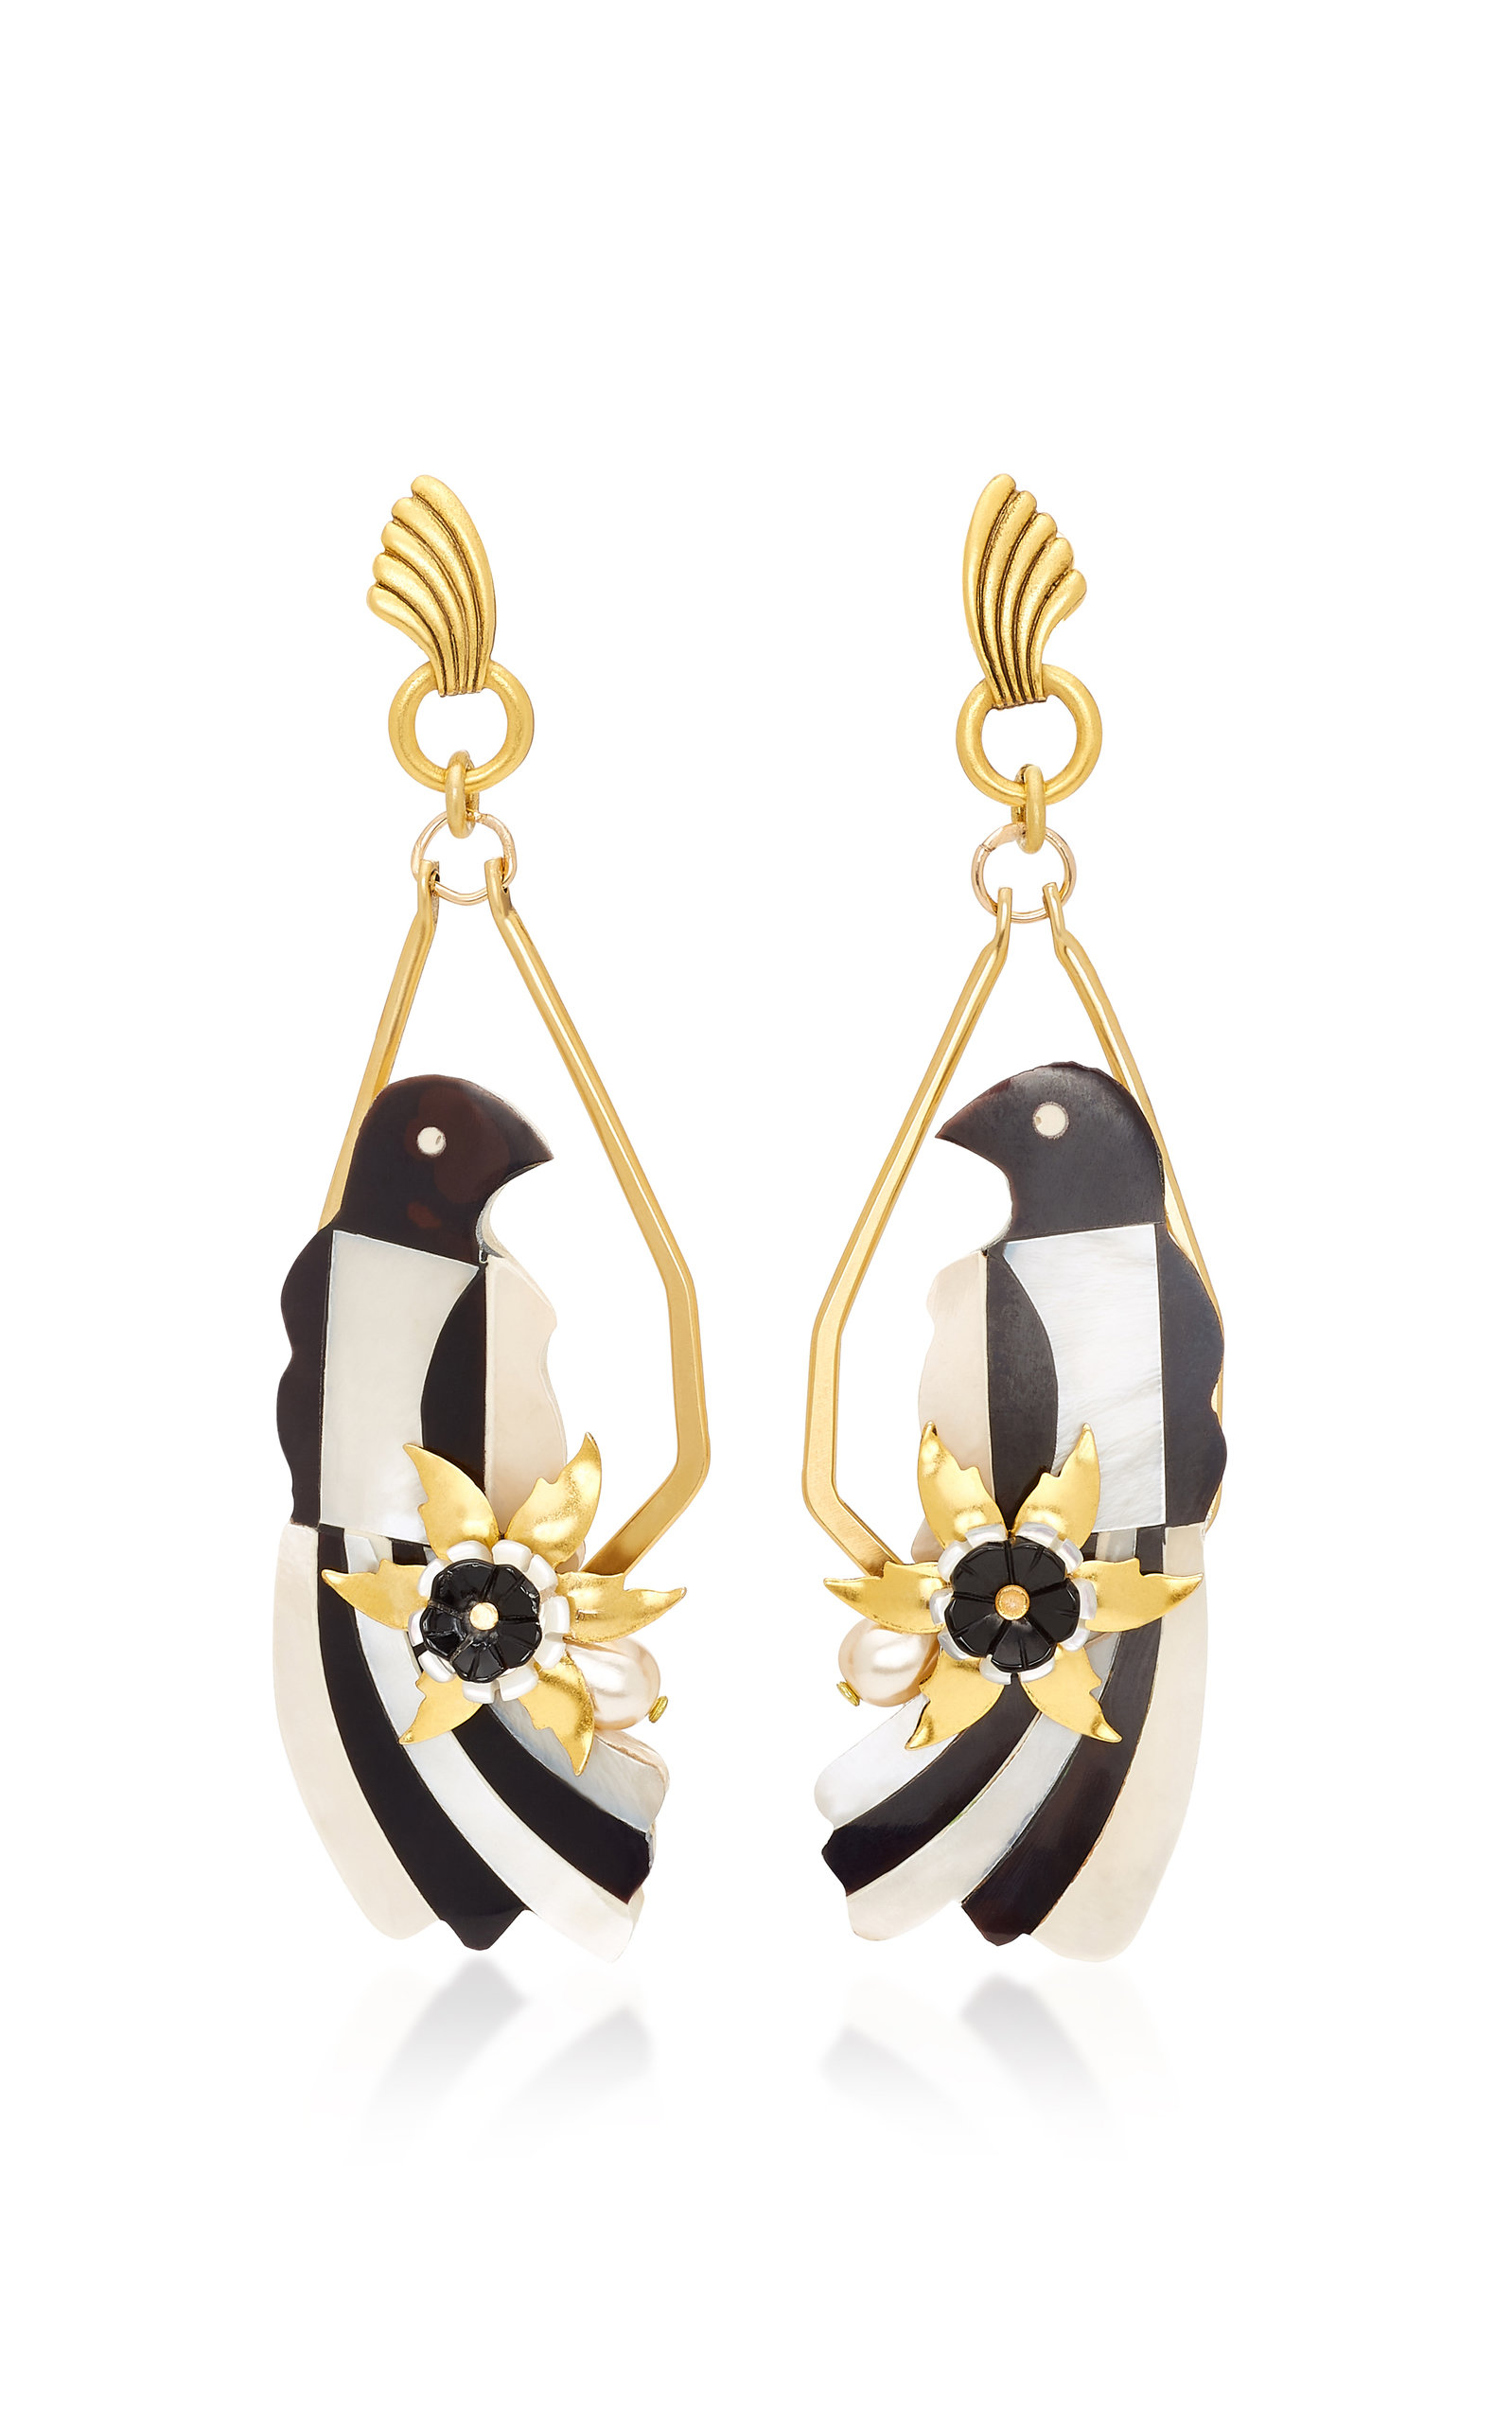 BRINKER & ELIZA IF YOU'RE A BIRD 24K GOLD-PLATED MOTHER OF PEARL EARRINGS